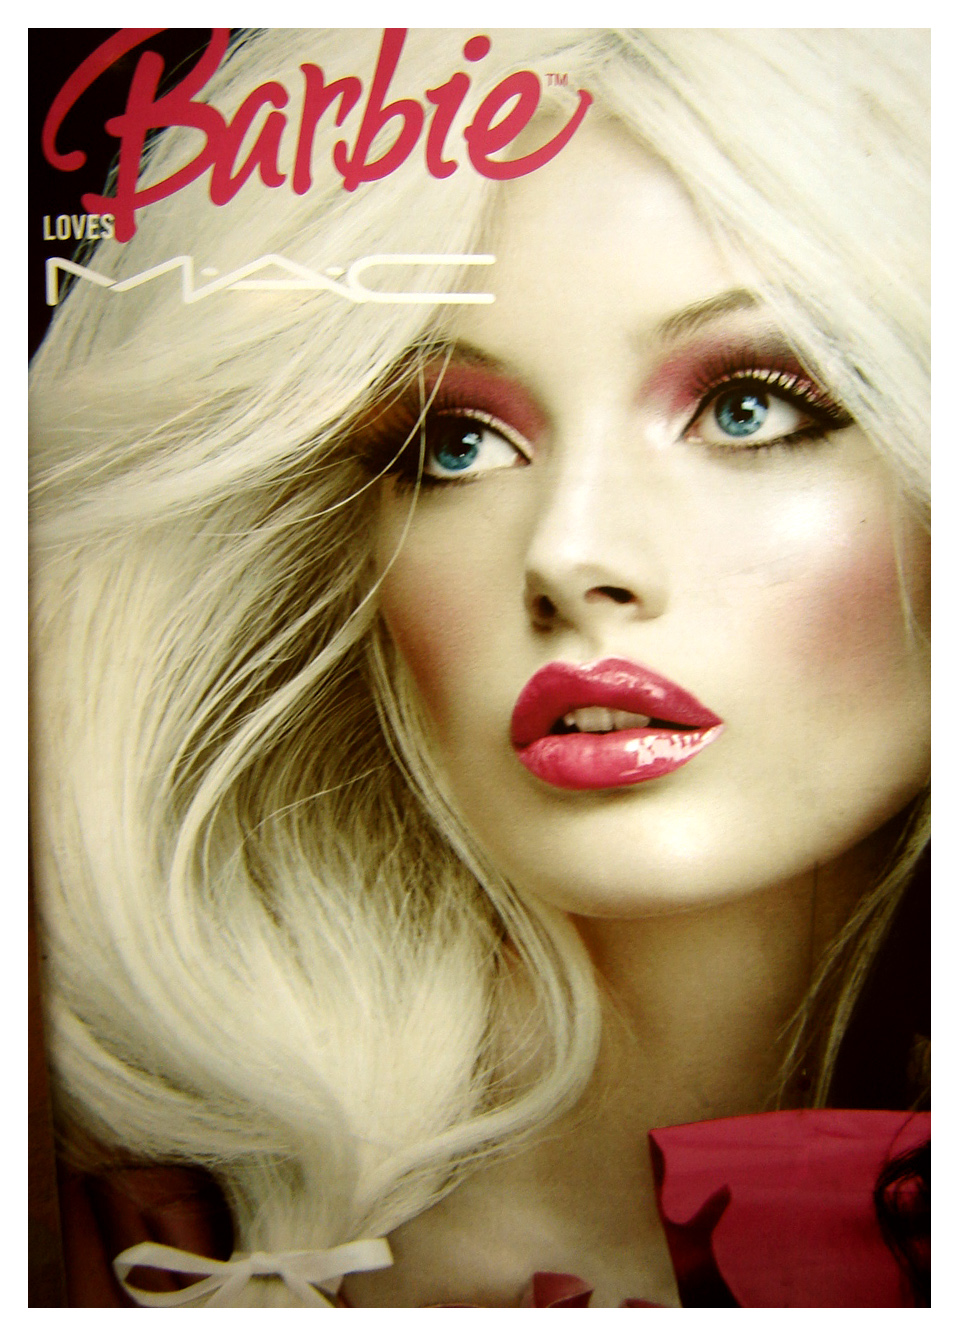 Barbie Makeup: A Little Something About Nia: M.A.C. And Barbie Advertisement